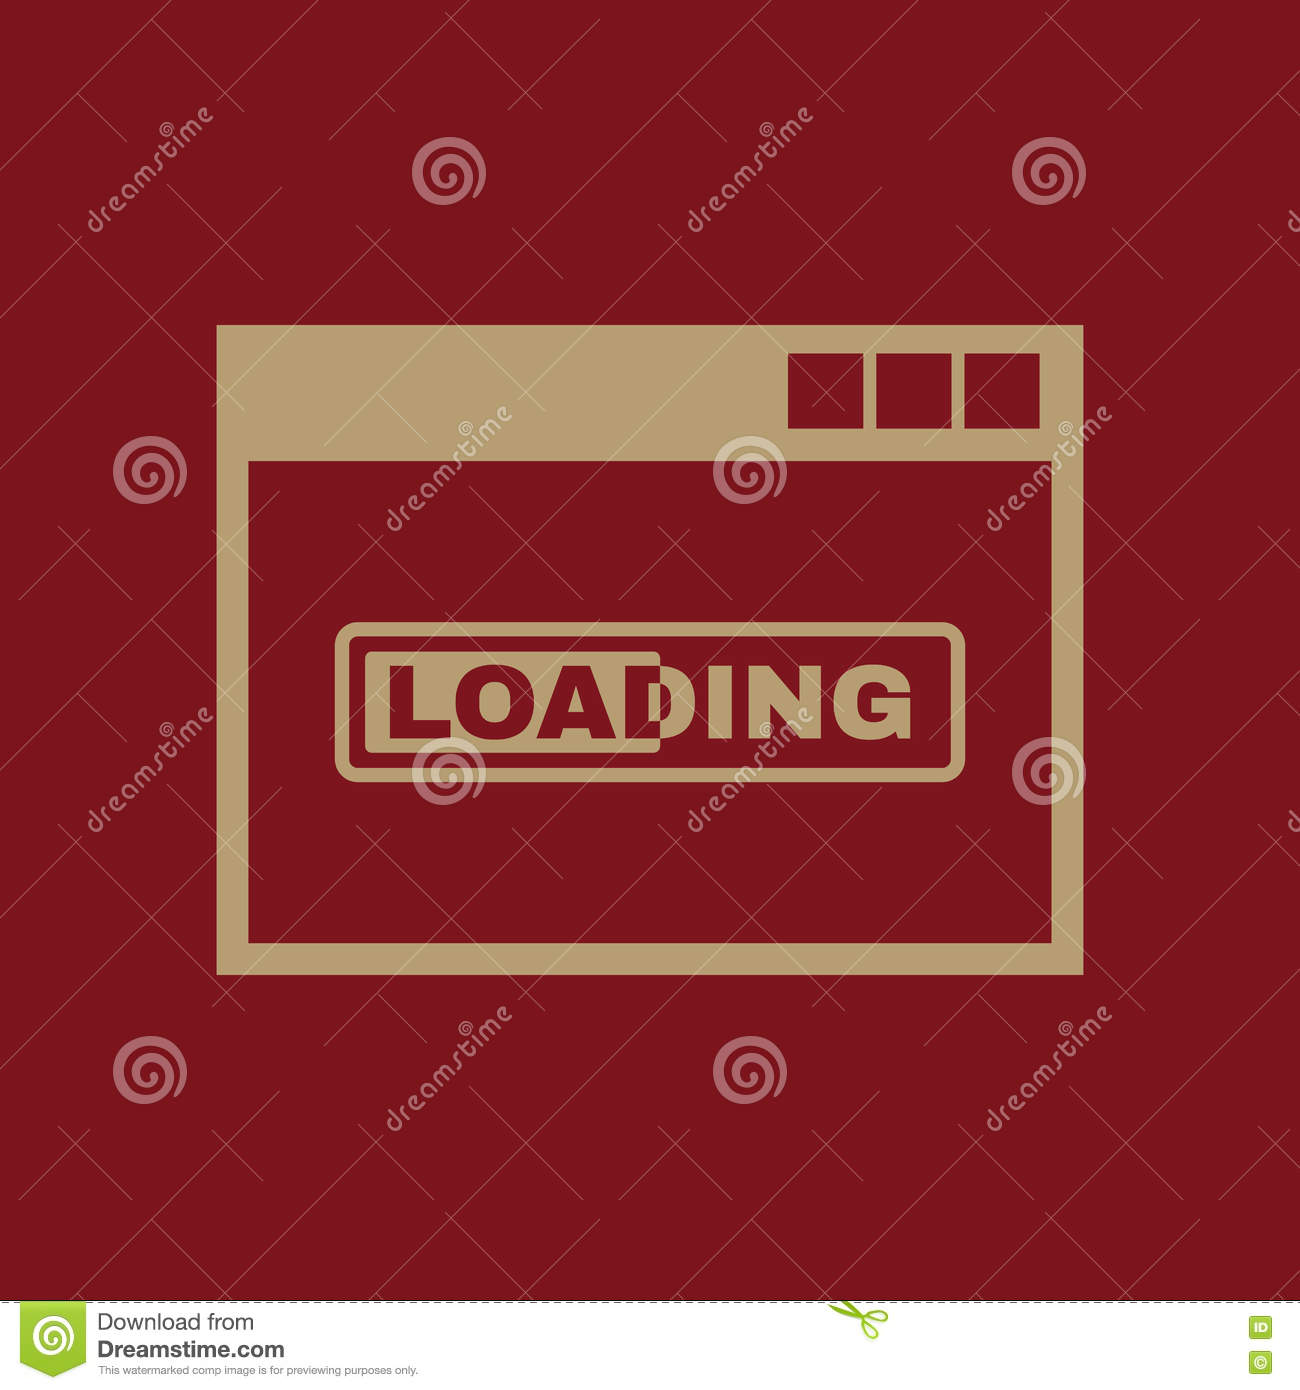 Loading icon vector design loading symbol web graphic jpg ai loading icon vector design loading symbol web graphic jpg ai app logo object flat image sign eps art button indicator biocorpaavc Image collections